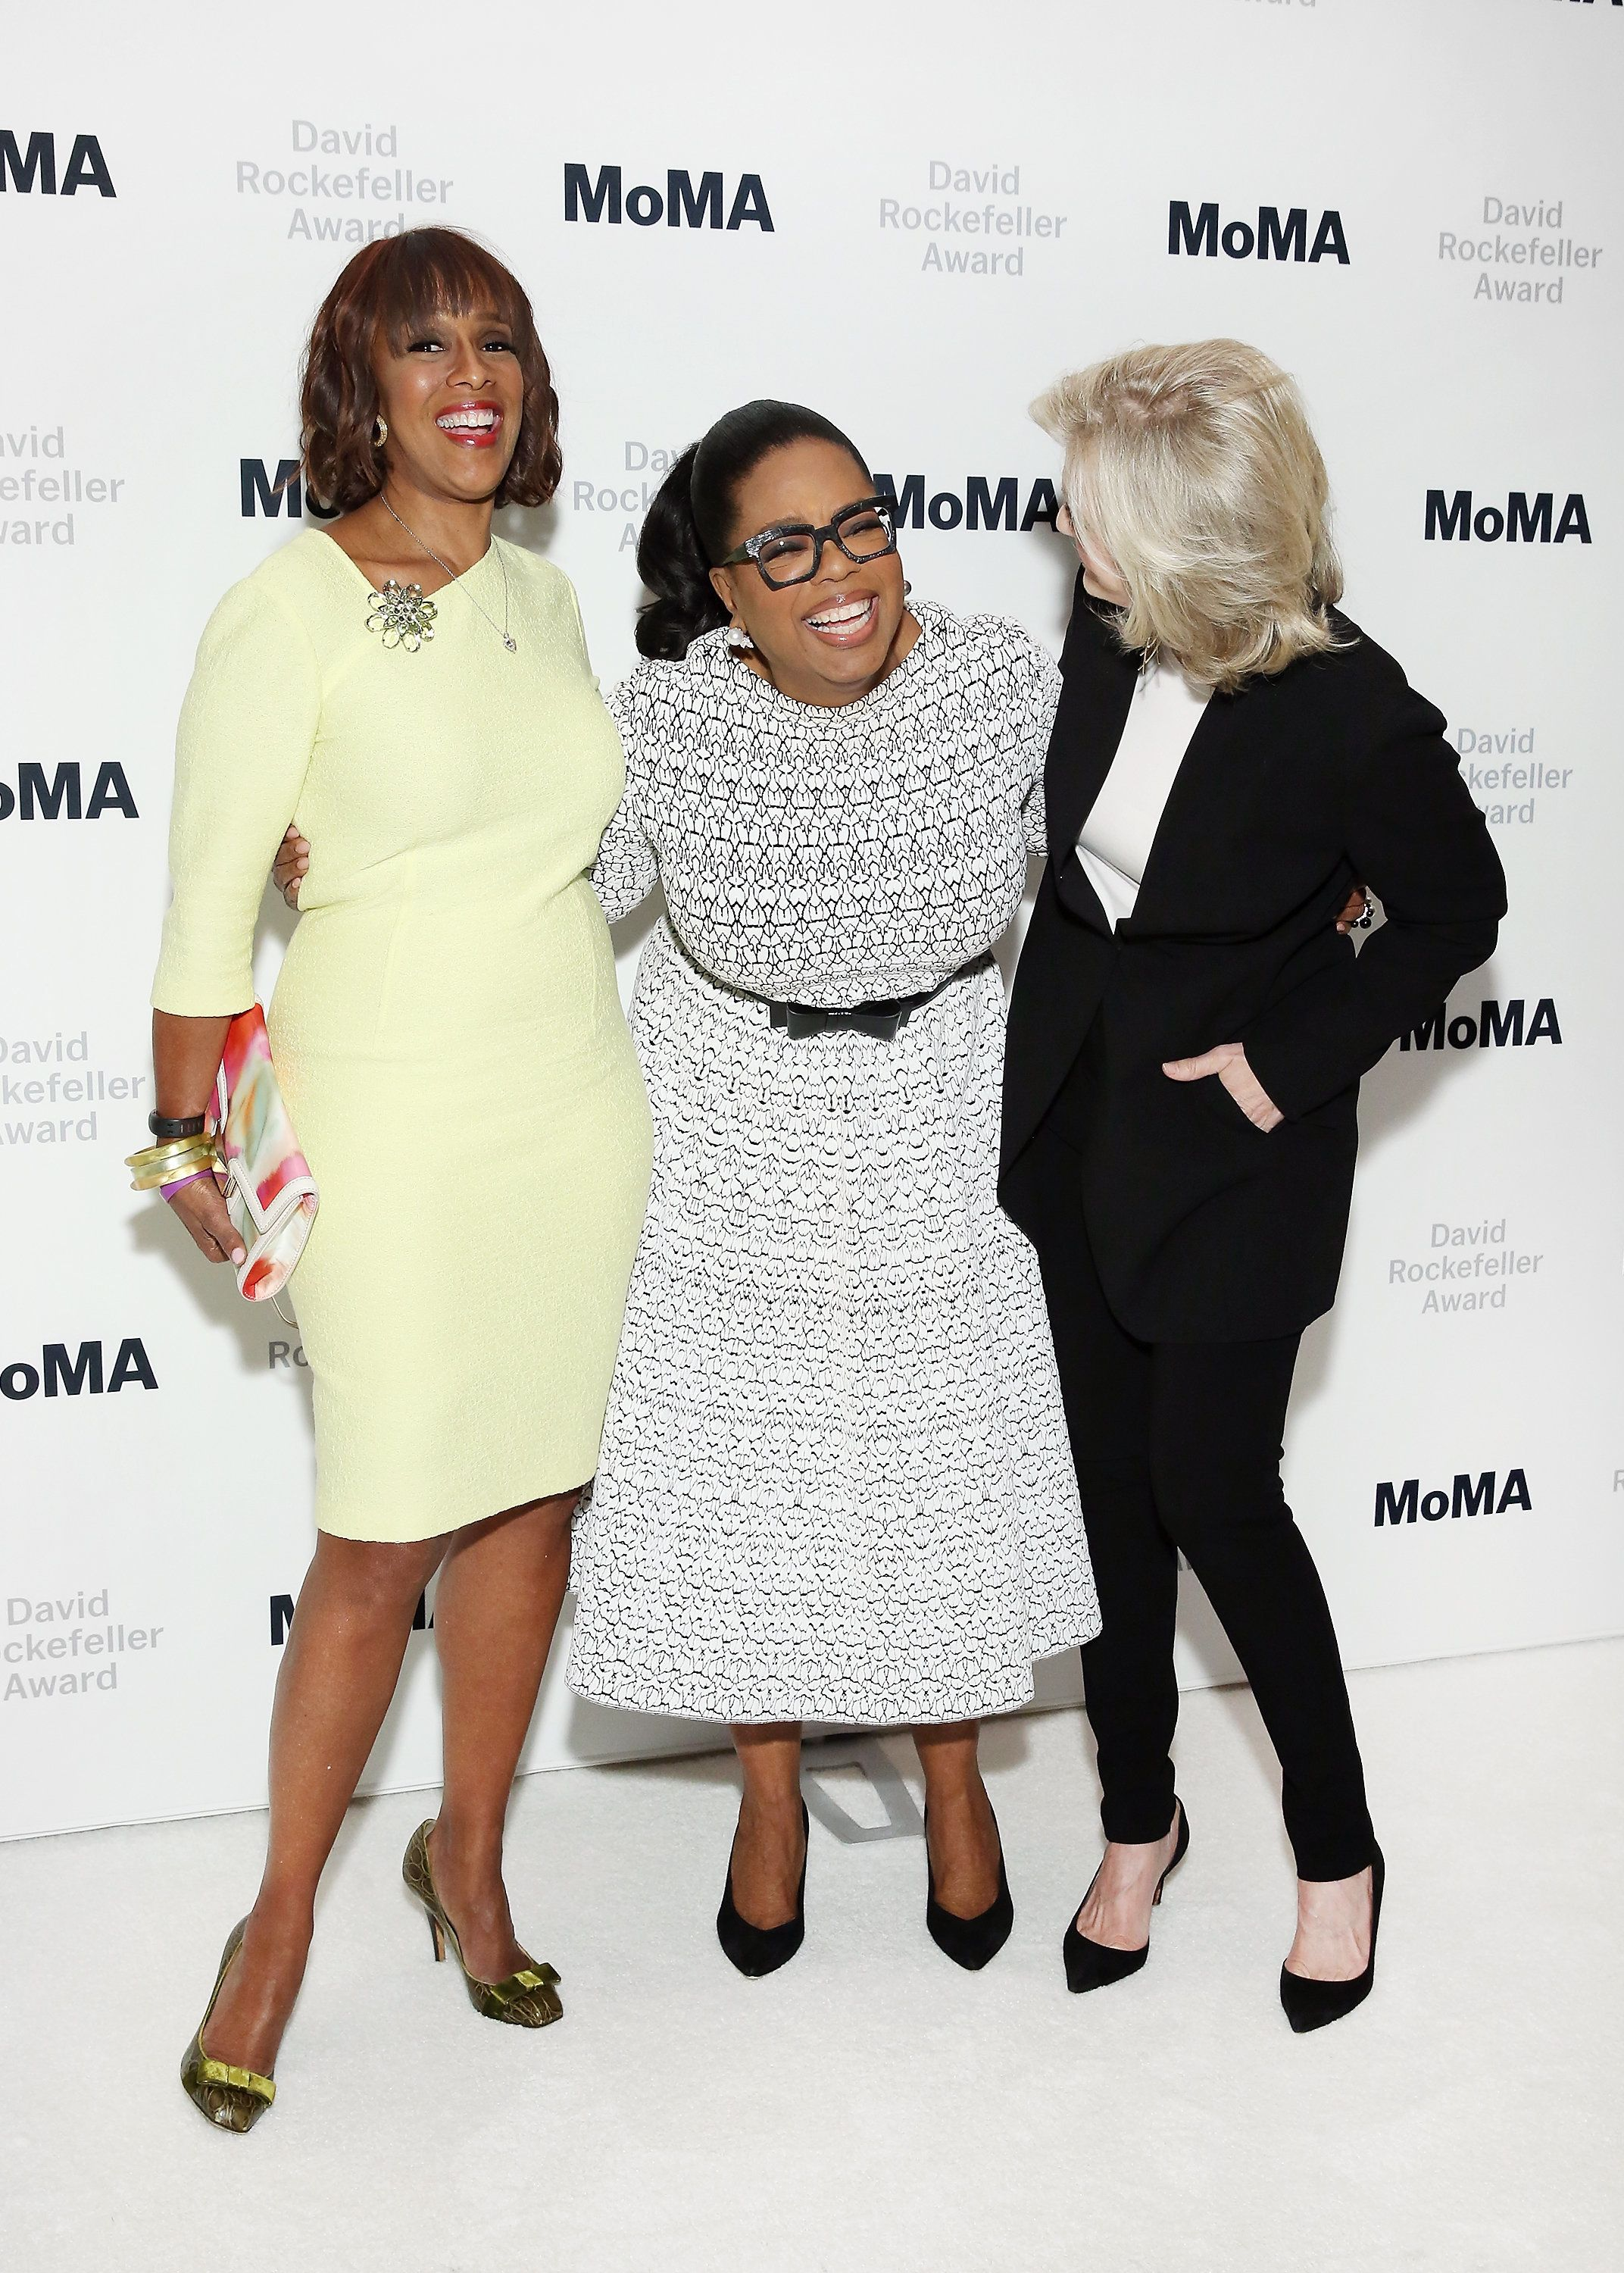 NEW YORK, NY - MARCH 06:  (L-R) Gayle King, honoree Oprah Winfrey and Diane Sawyer attend The Museum of Modern ArtÕs 2018 David Rockefeller Award Luncheon at The Ziegfeld Ballroom on March 6, 2018 in New York City.  (Photo by Monica Schipper/Getty Images)